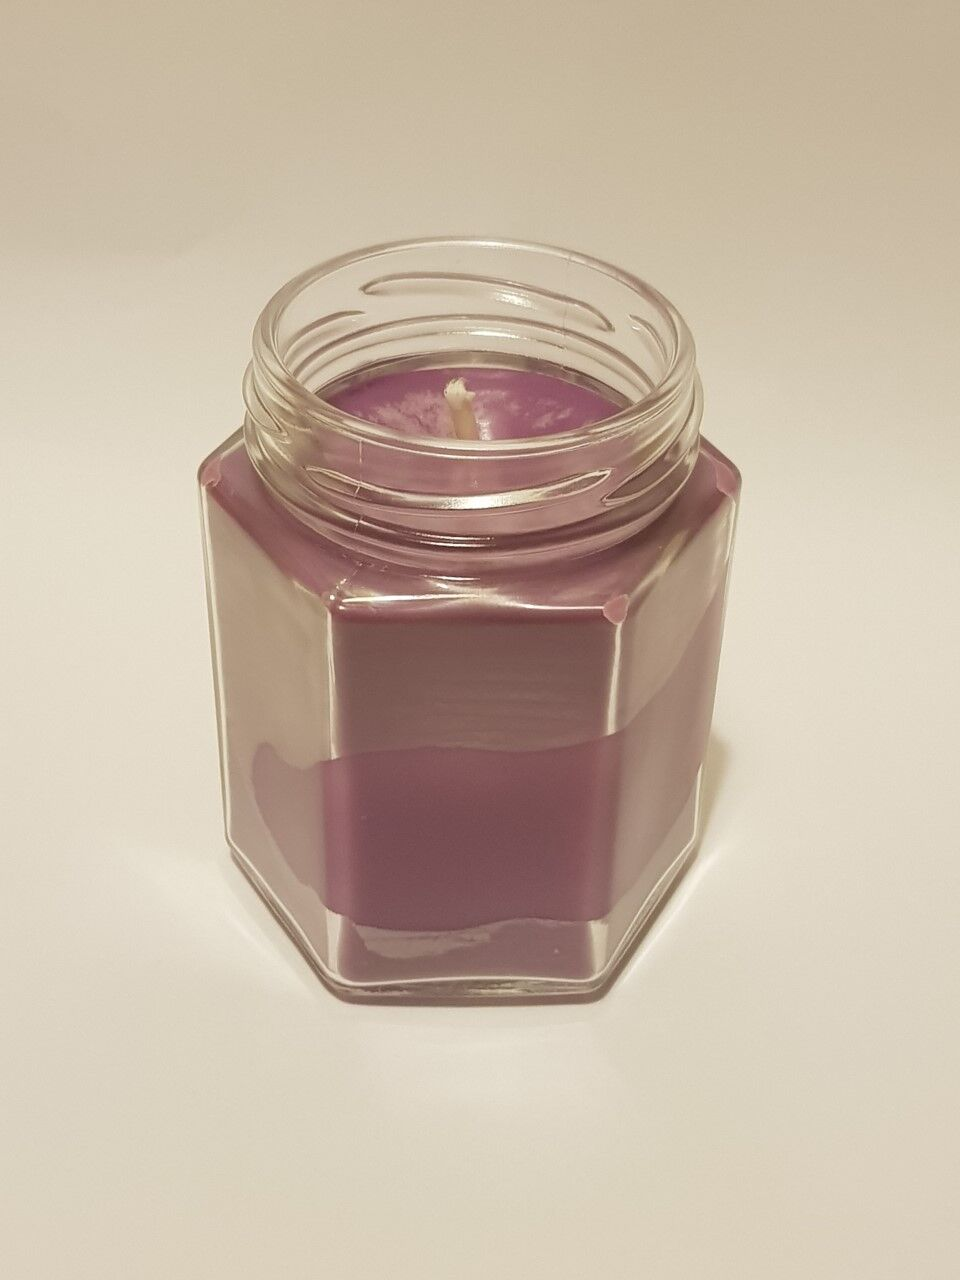 vegan friendly lavender scent